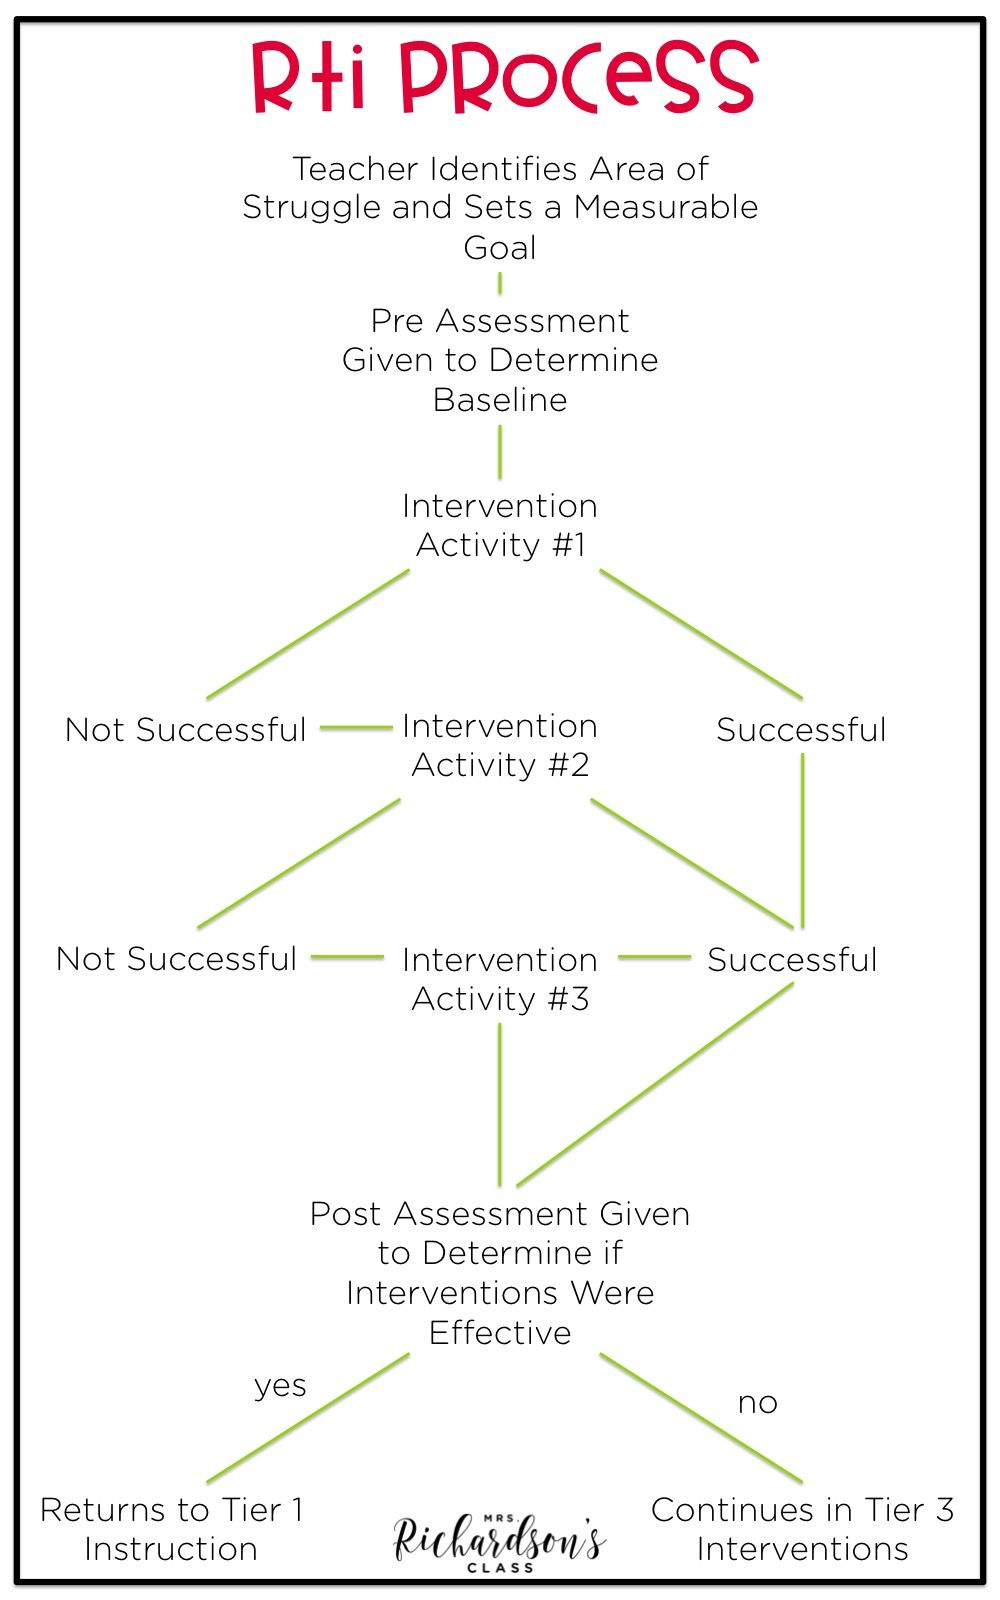 4 Tips For Managing Rti Mrs Richardson S Class Rti Interventions Elementary Rti Interventions Response To Intervention